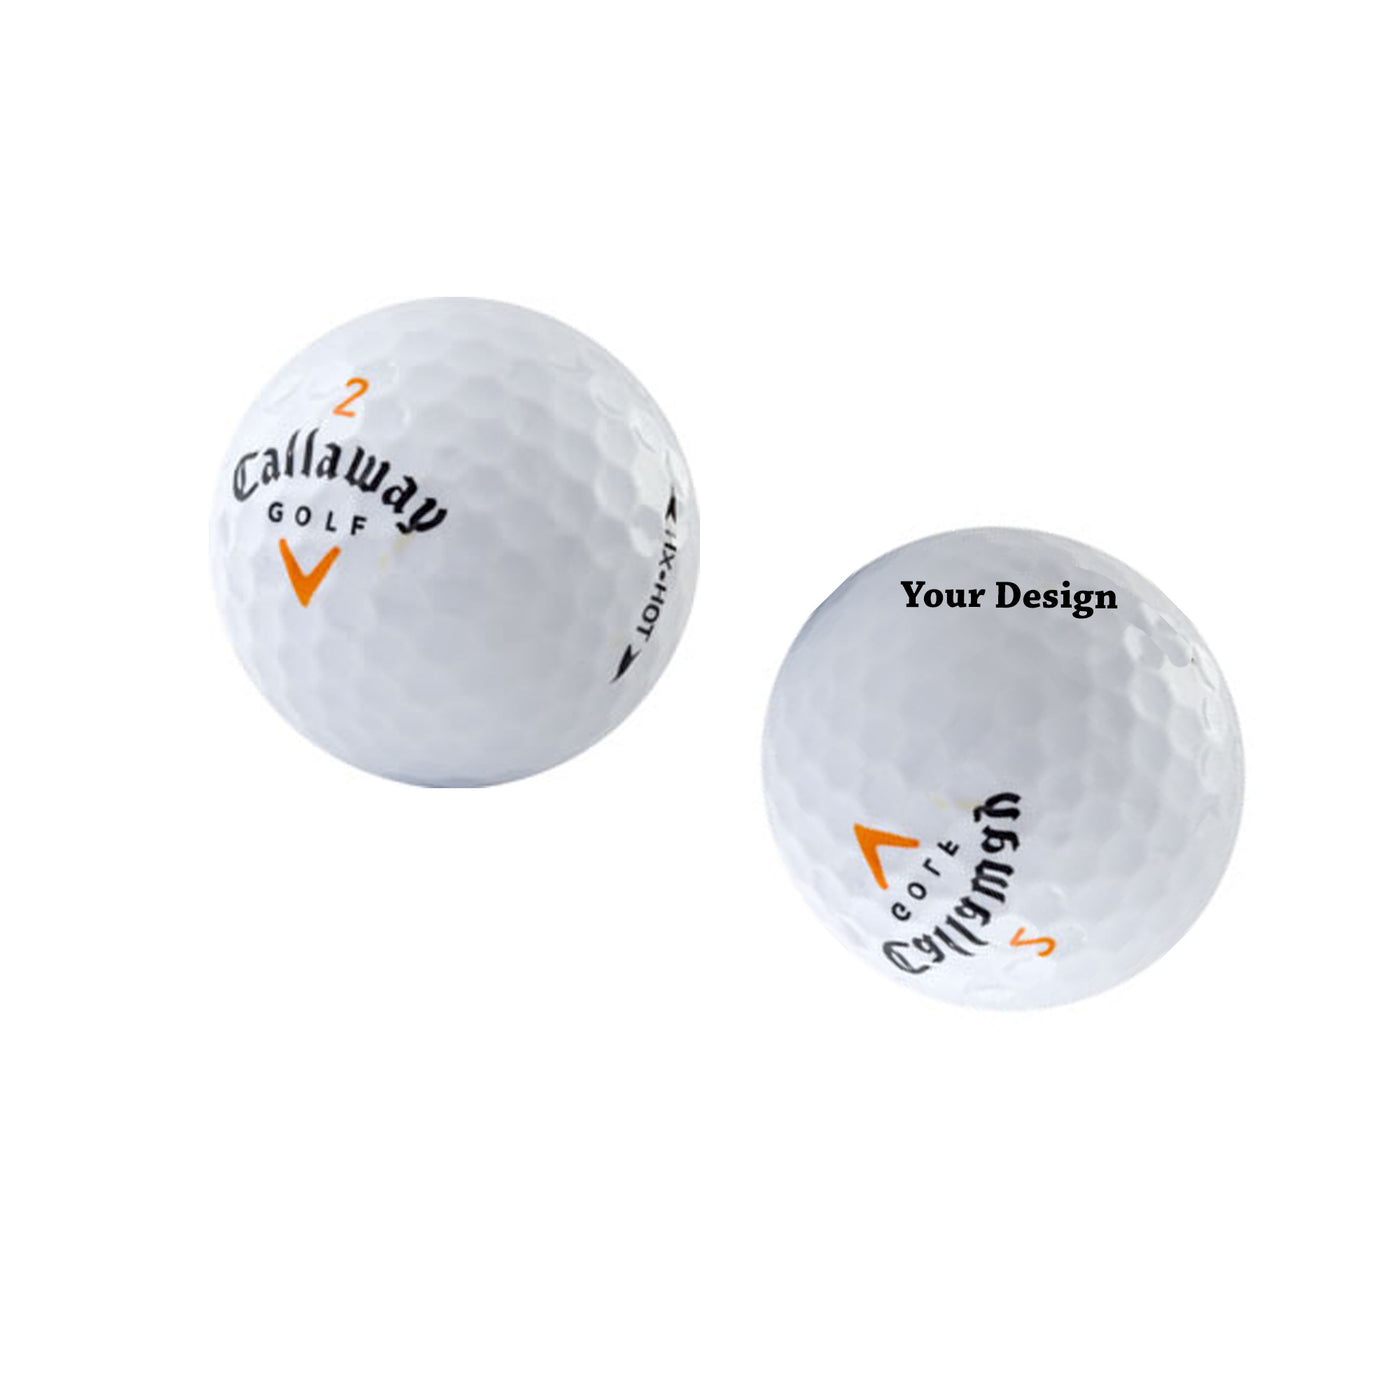 Set Of 3 Custom Uv Printed Golf Ball Personalized Golf Balls